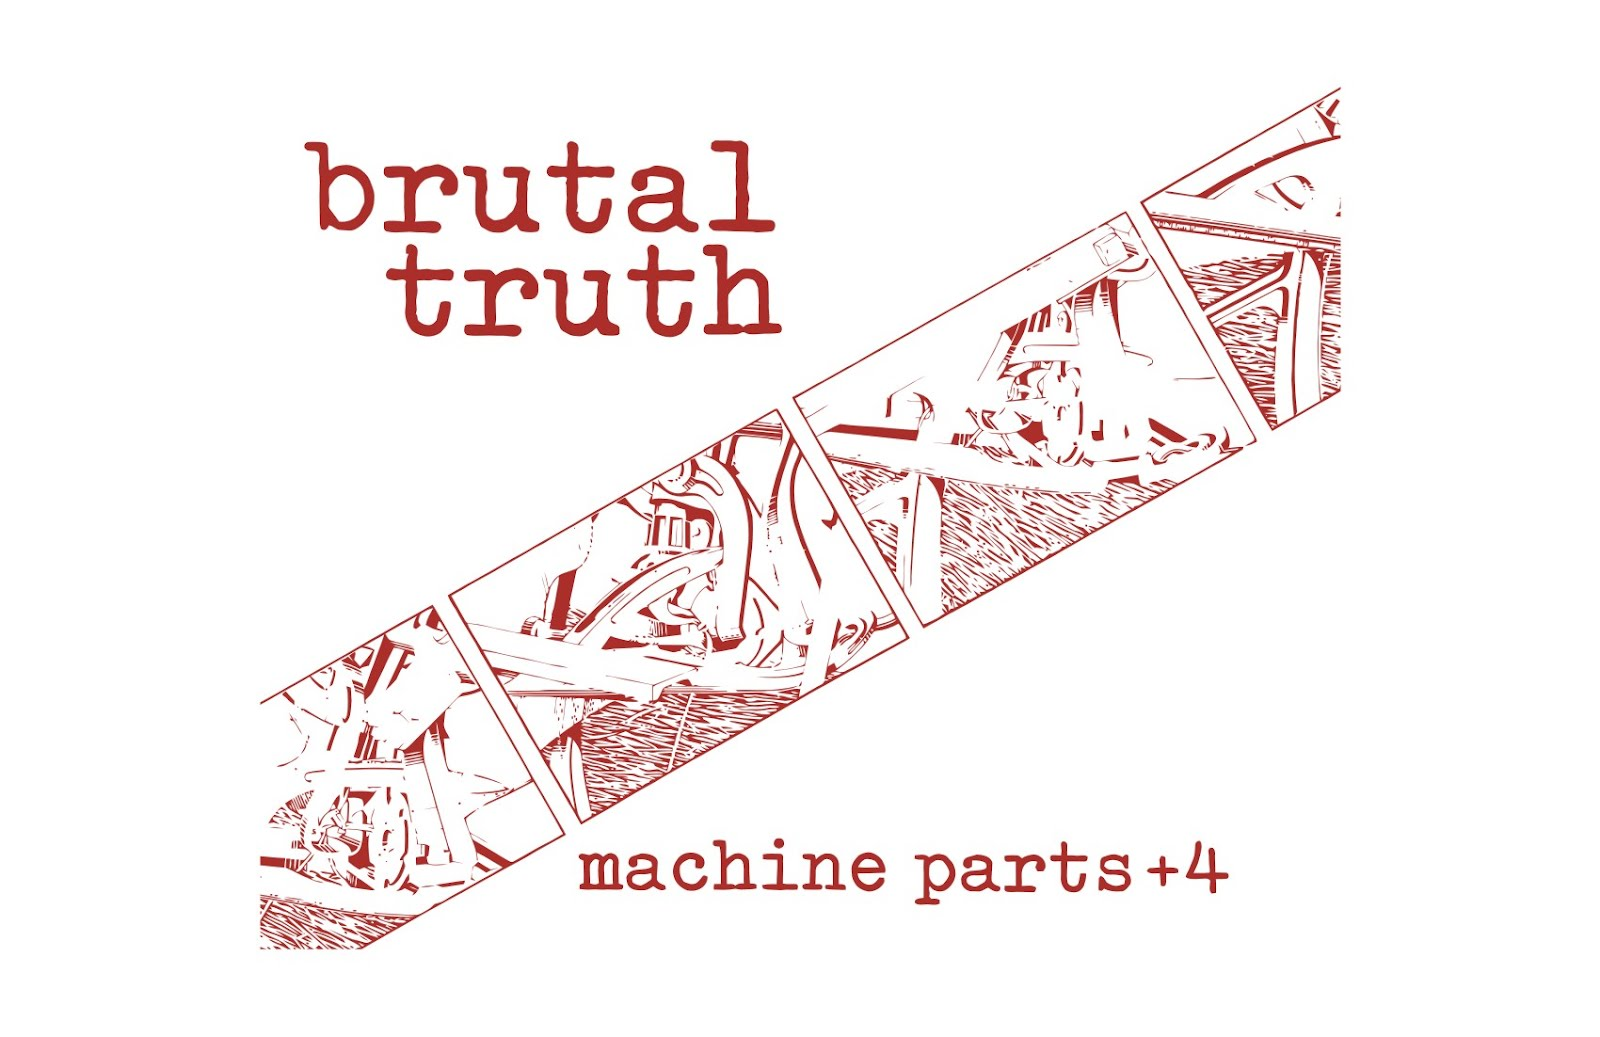 brutal_truth-machine_part_4_front_vector